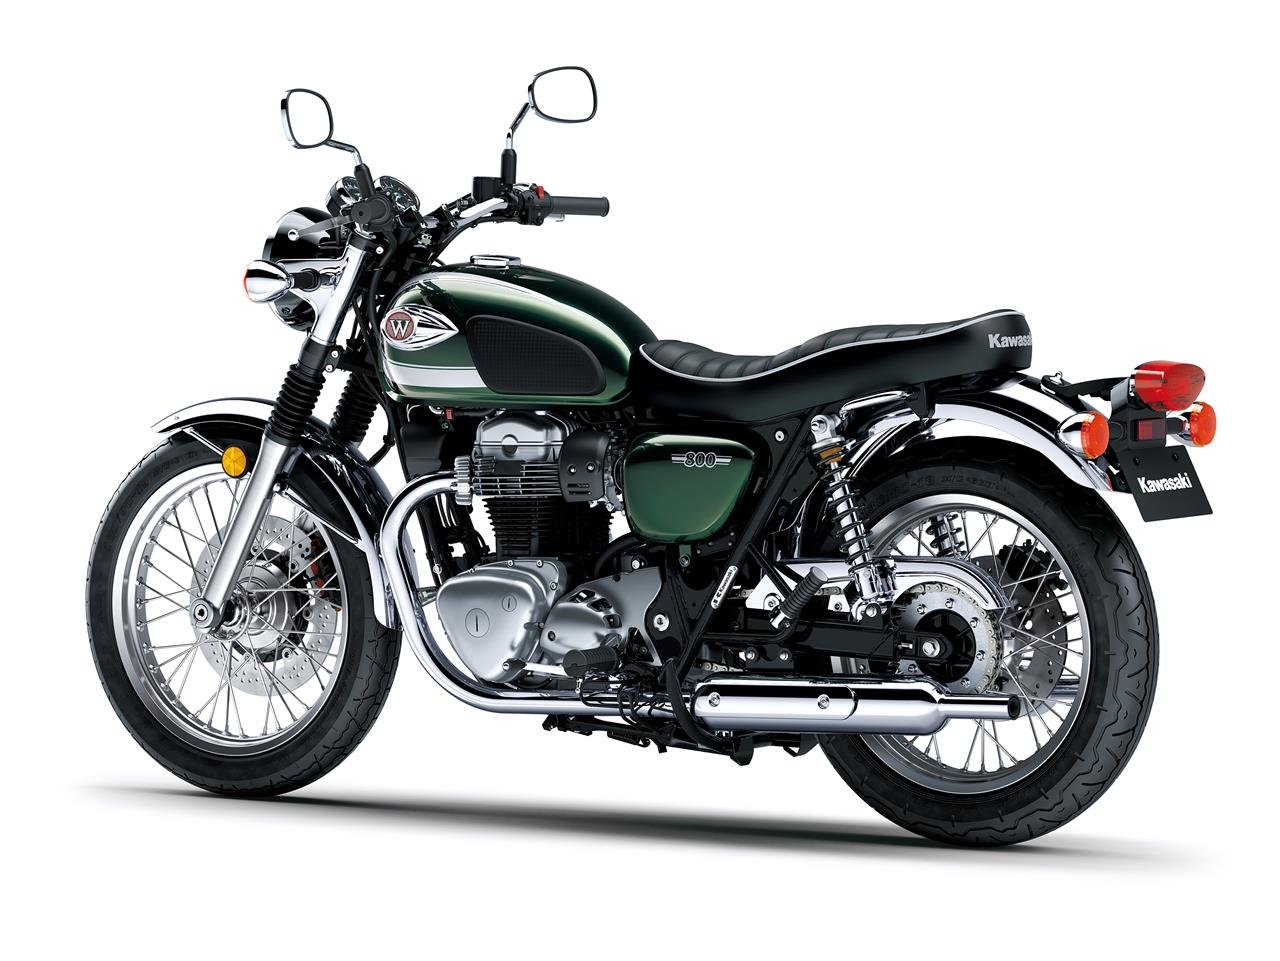 New 2020 Kawasaki W800 ABS **IN STOCK WITH FREE DELIVERY** For Sale (picture 4 of 6)